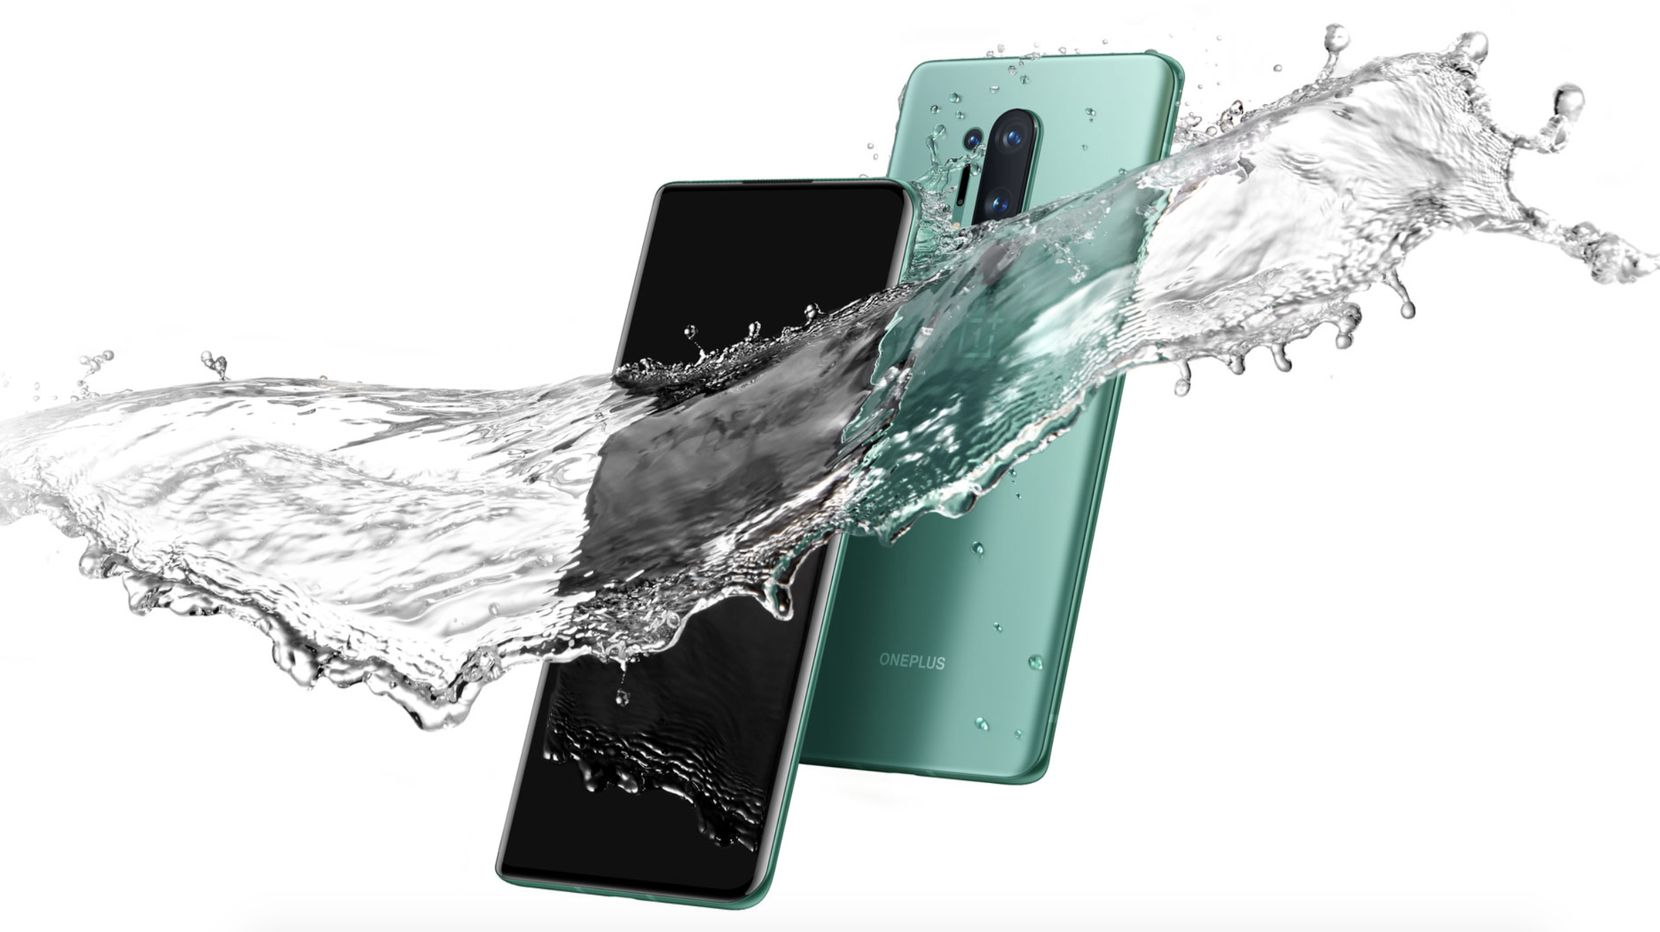 The OnePlus 8 Pro is IP86 water- and dust-resistant.